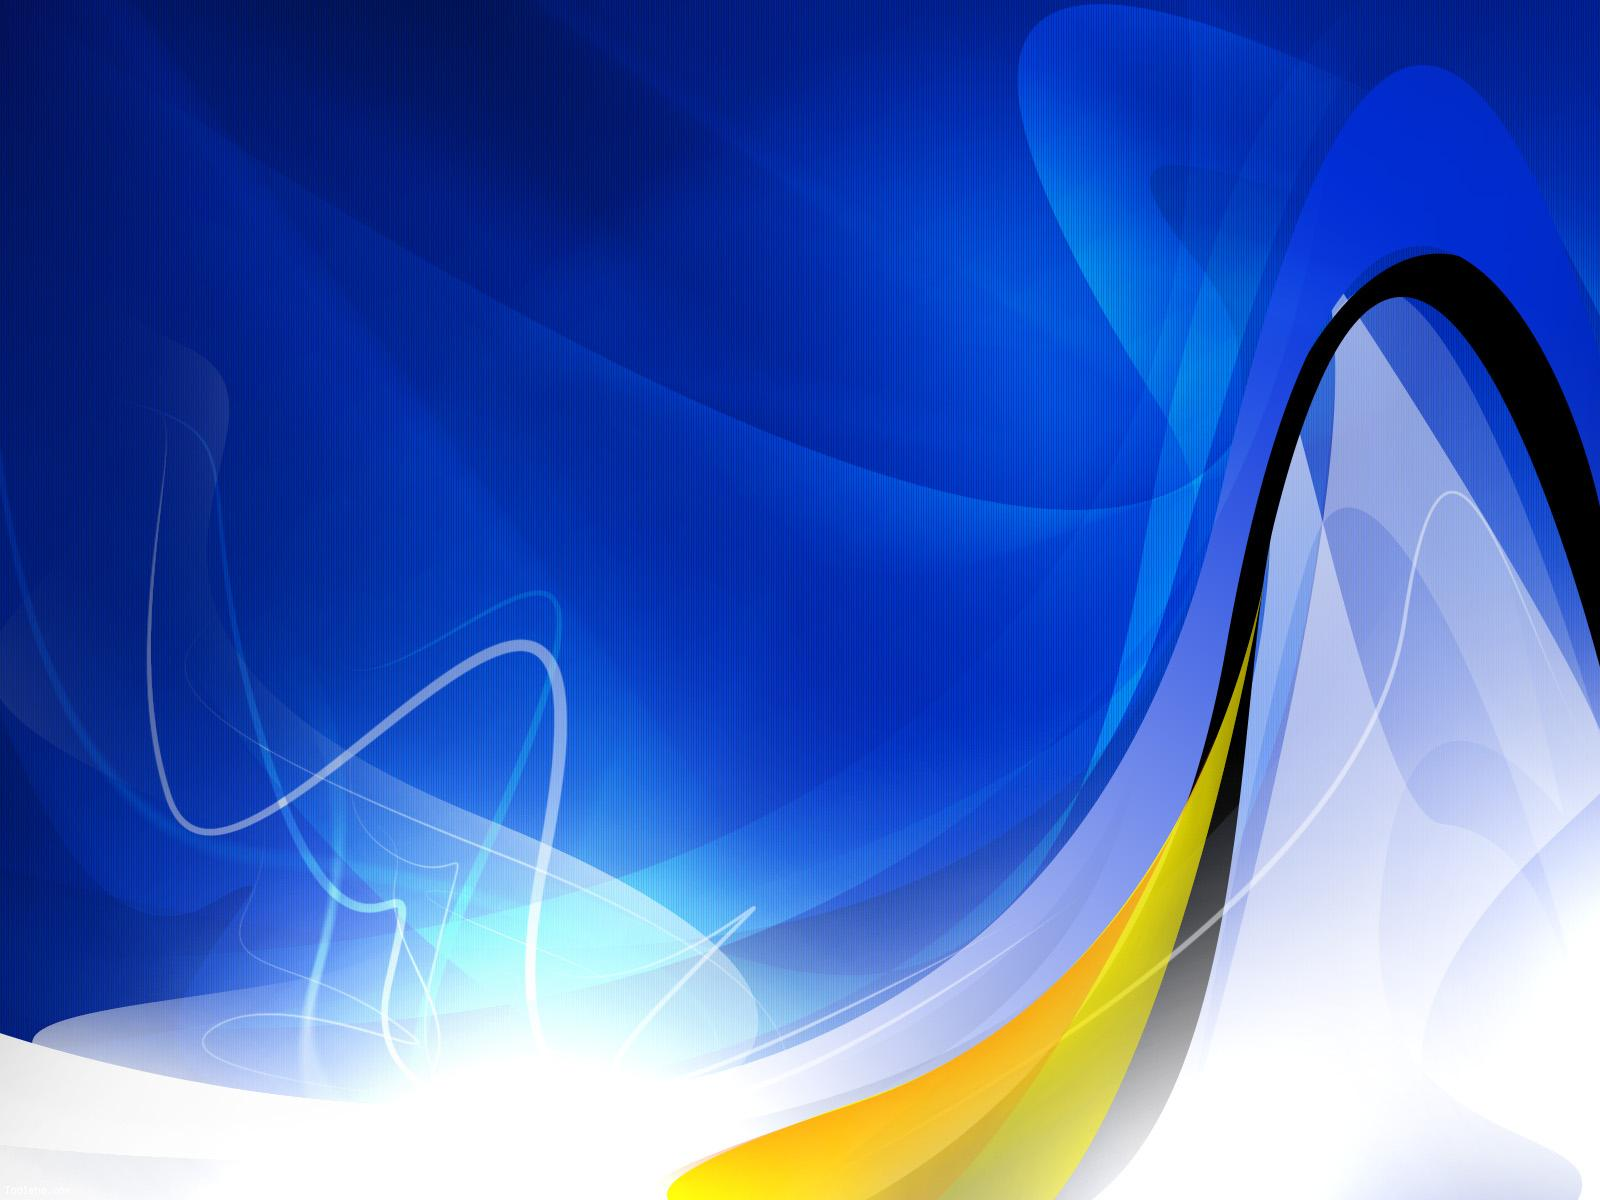 Abstract Wallpaper Blue And Gold